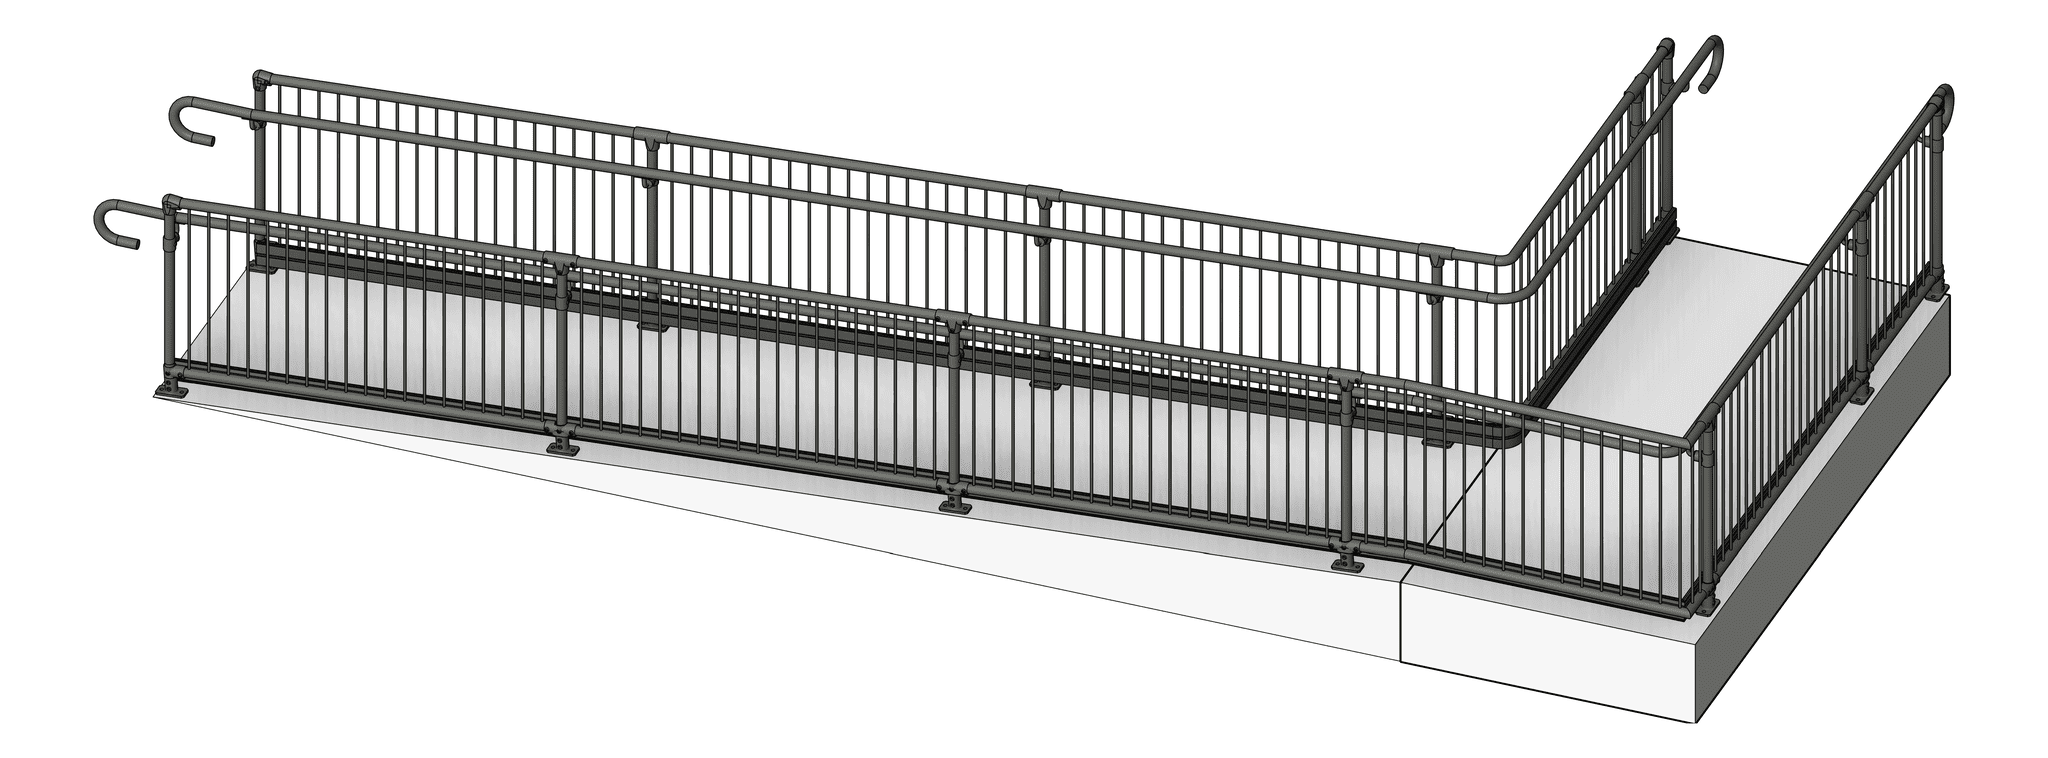 Balustrade_Commercial_Moddex_Conectabal_3D Shaded